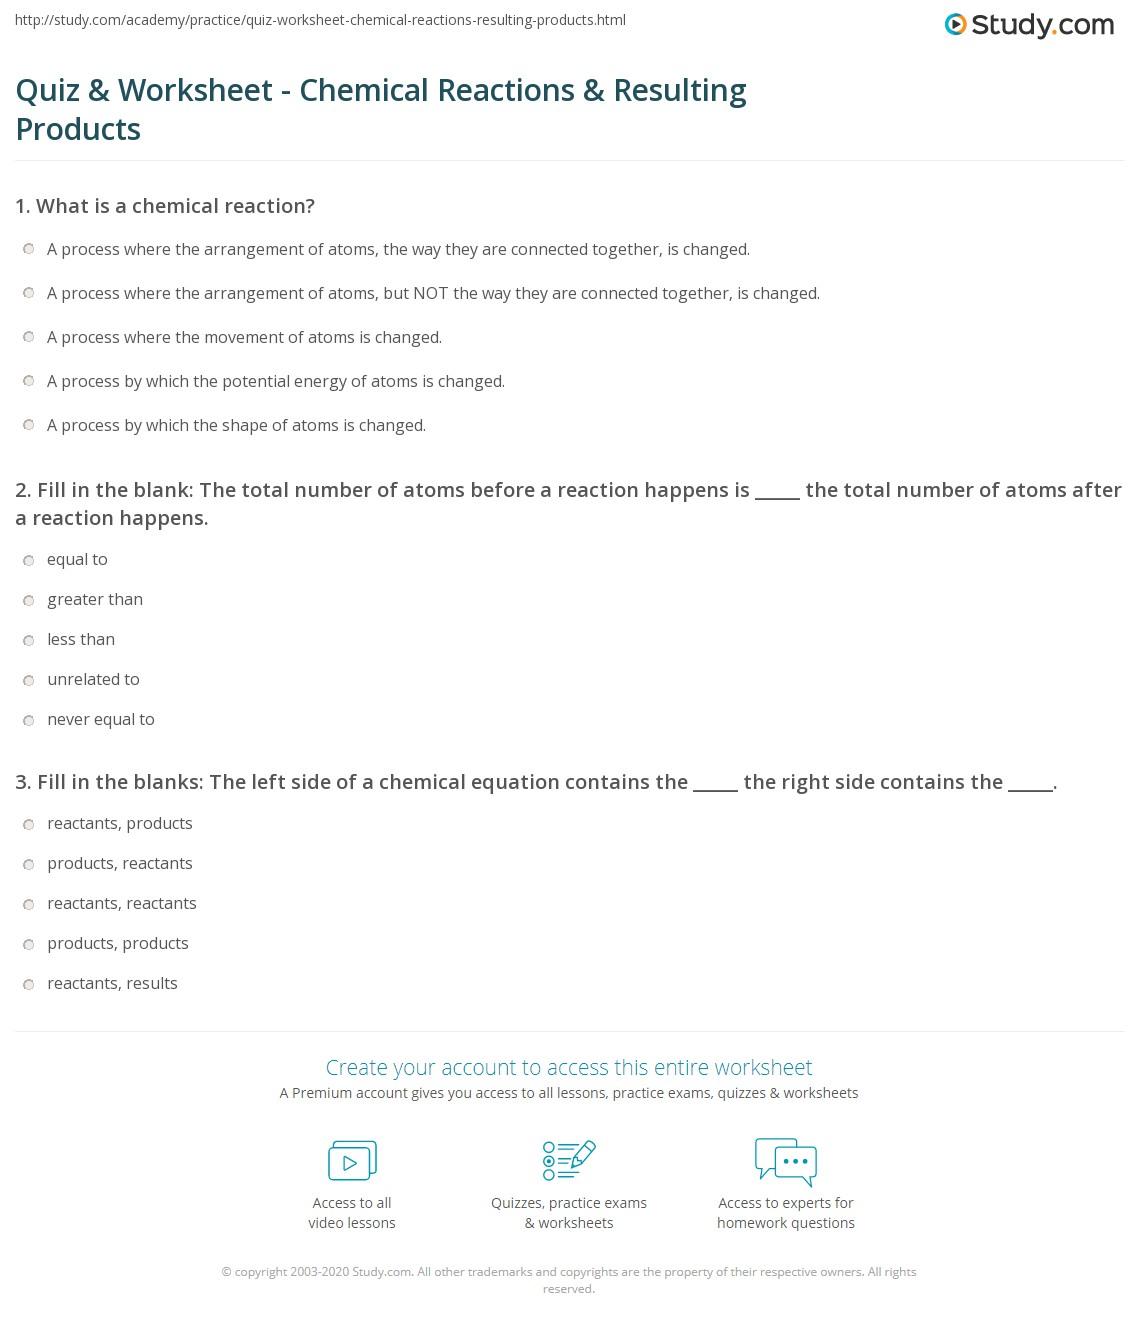 Worksheets Six Types Of Chemical Reaction Worksheet Answers six types of chemical reaction worksheet answers worksheets reactions sharebrowse reaction